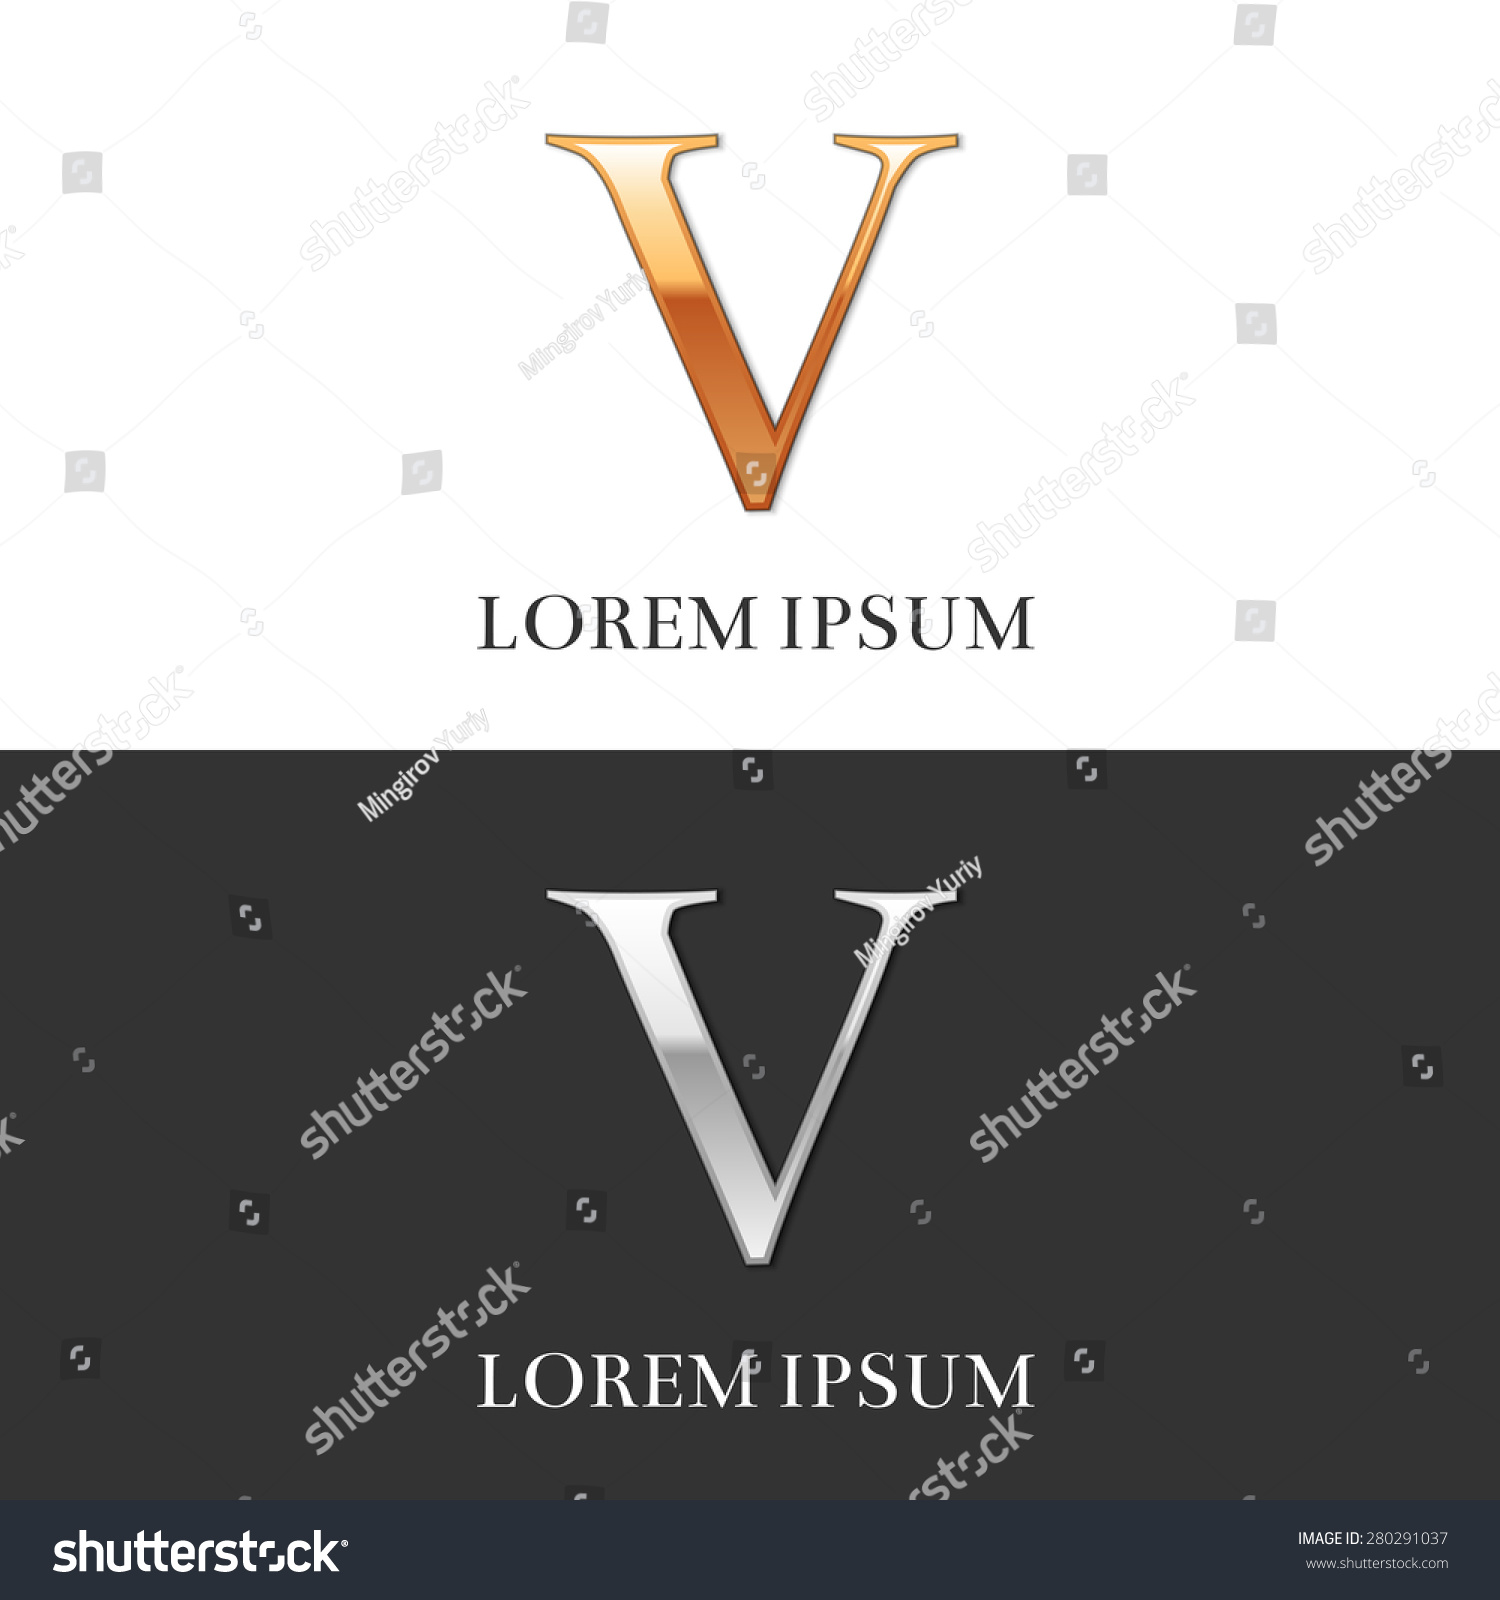 worksheet V Roman Numeral 5 v luxury gold silver roman stock vector 280291037 shutterstock and numerals sign logo symbol